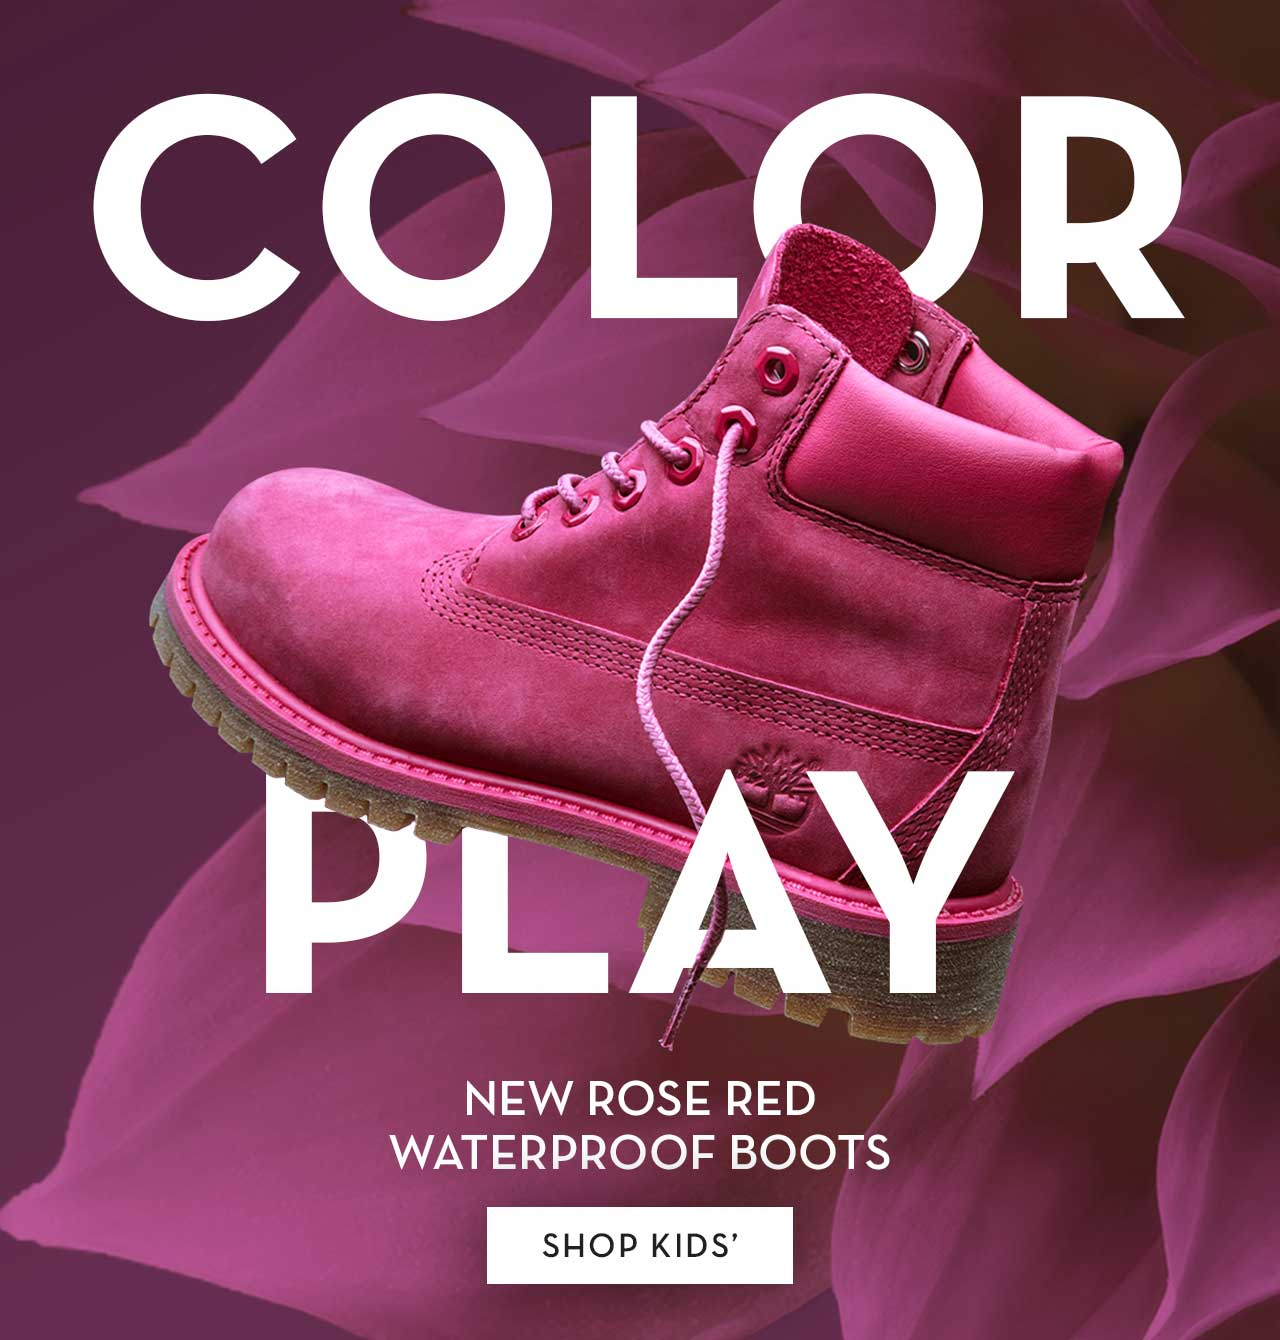 Color Play New Rose Red Waterproof Boots Shop Kids'